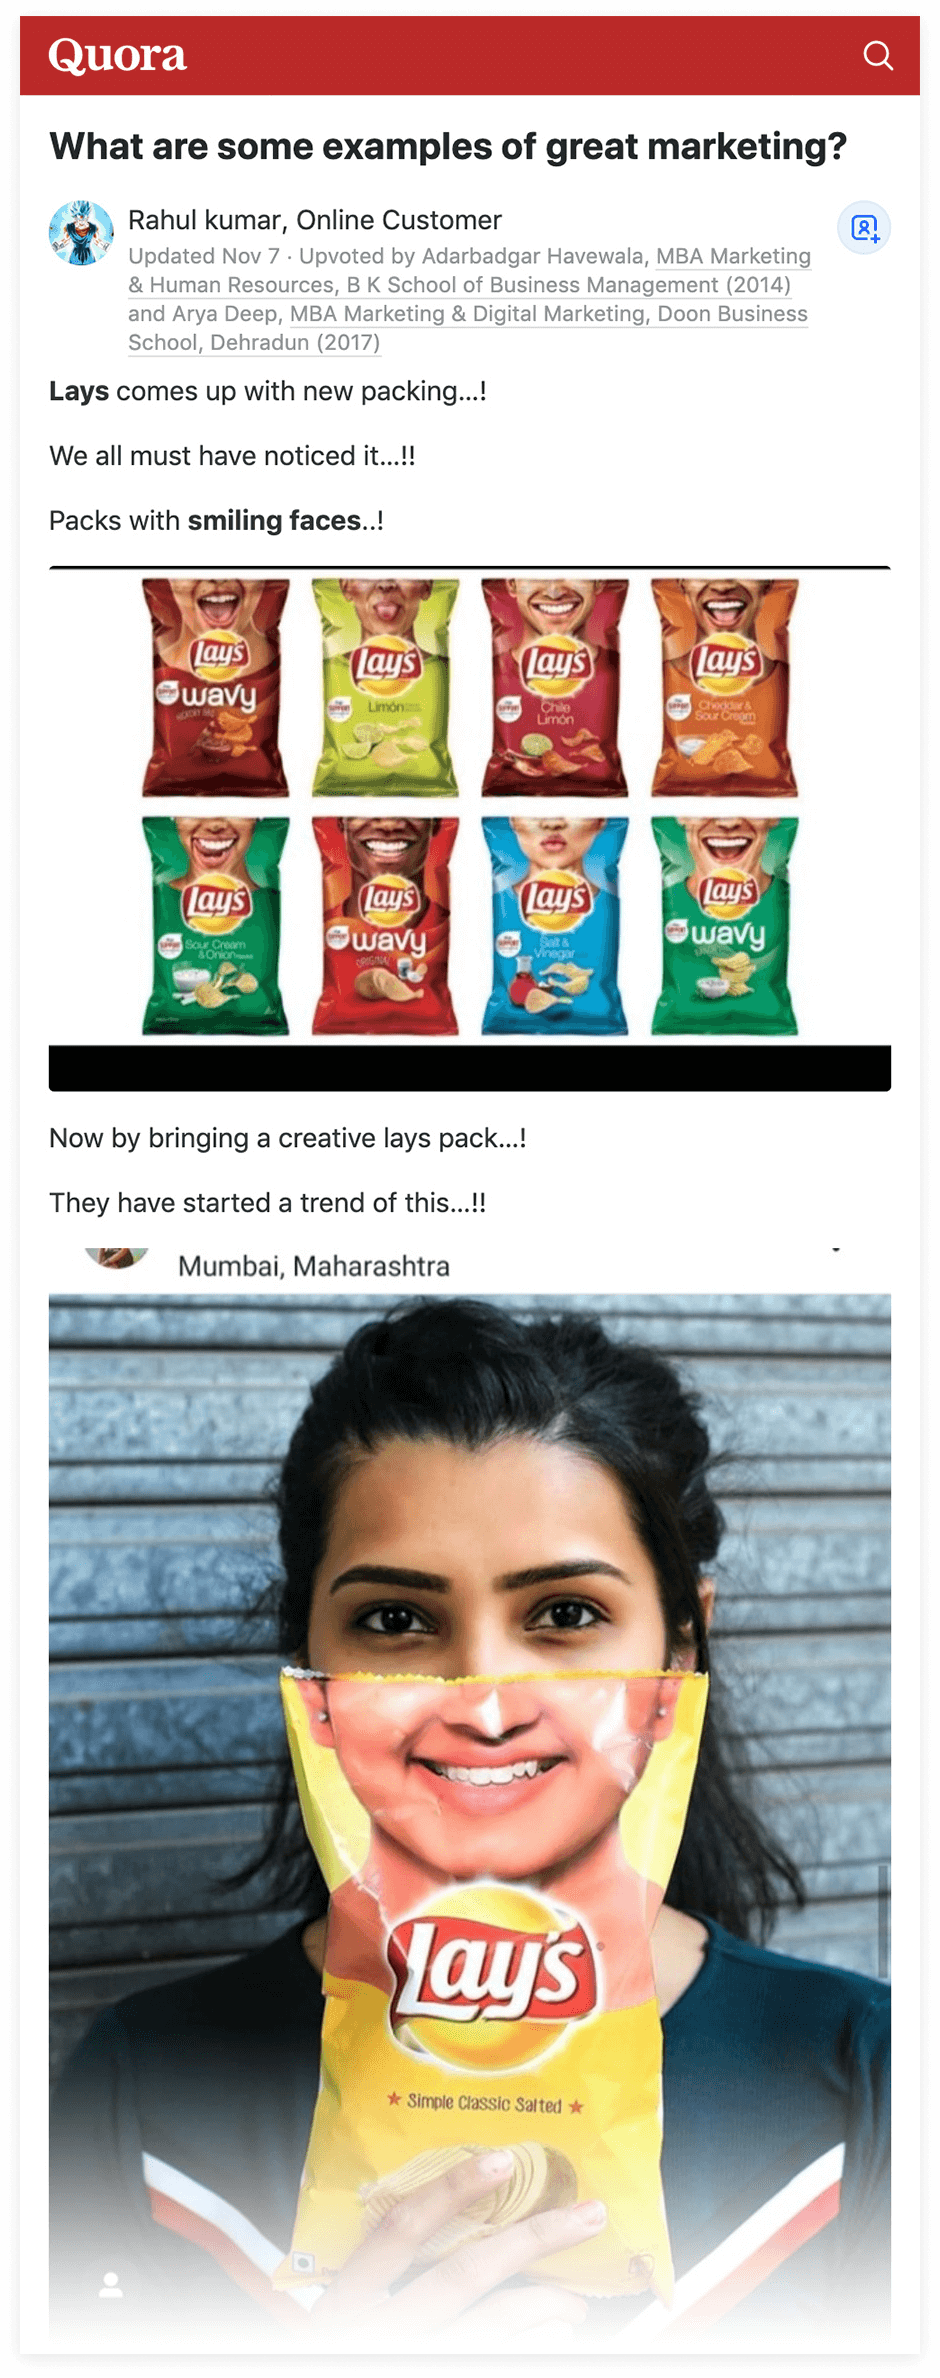 Quora - Lays smiling faces example